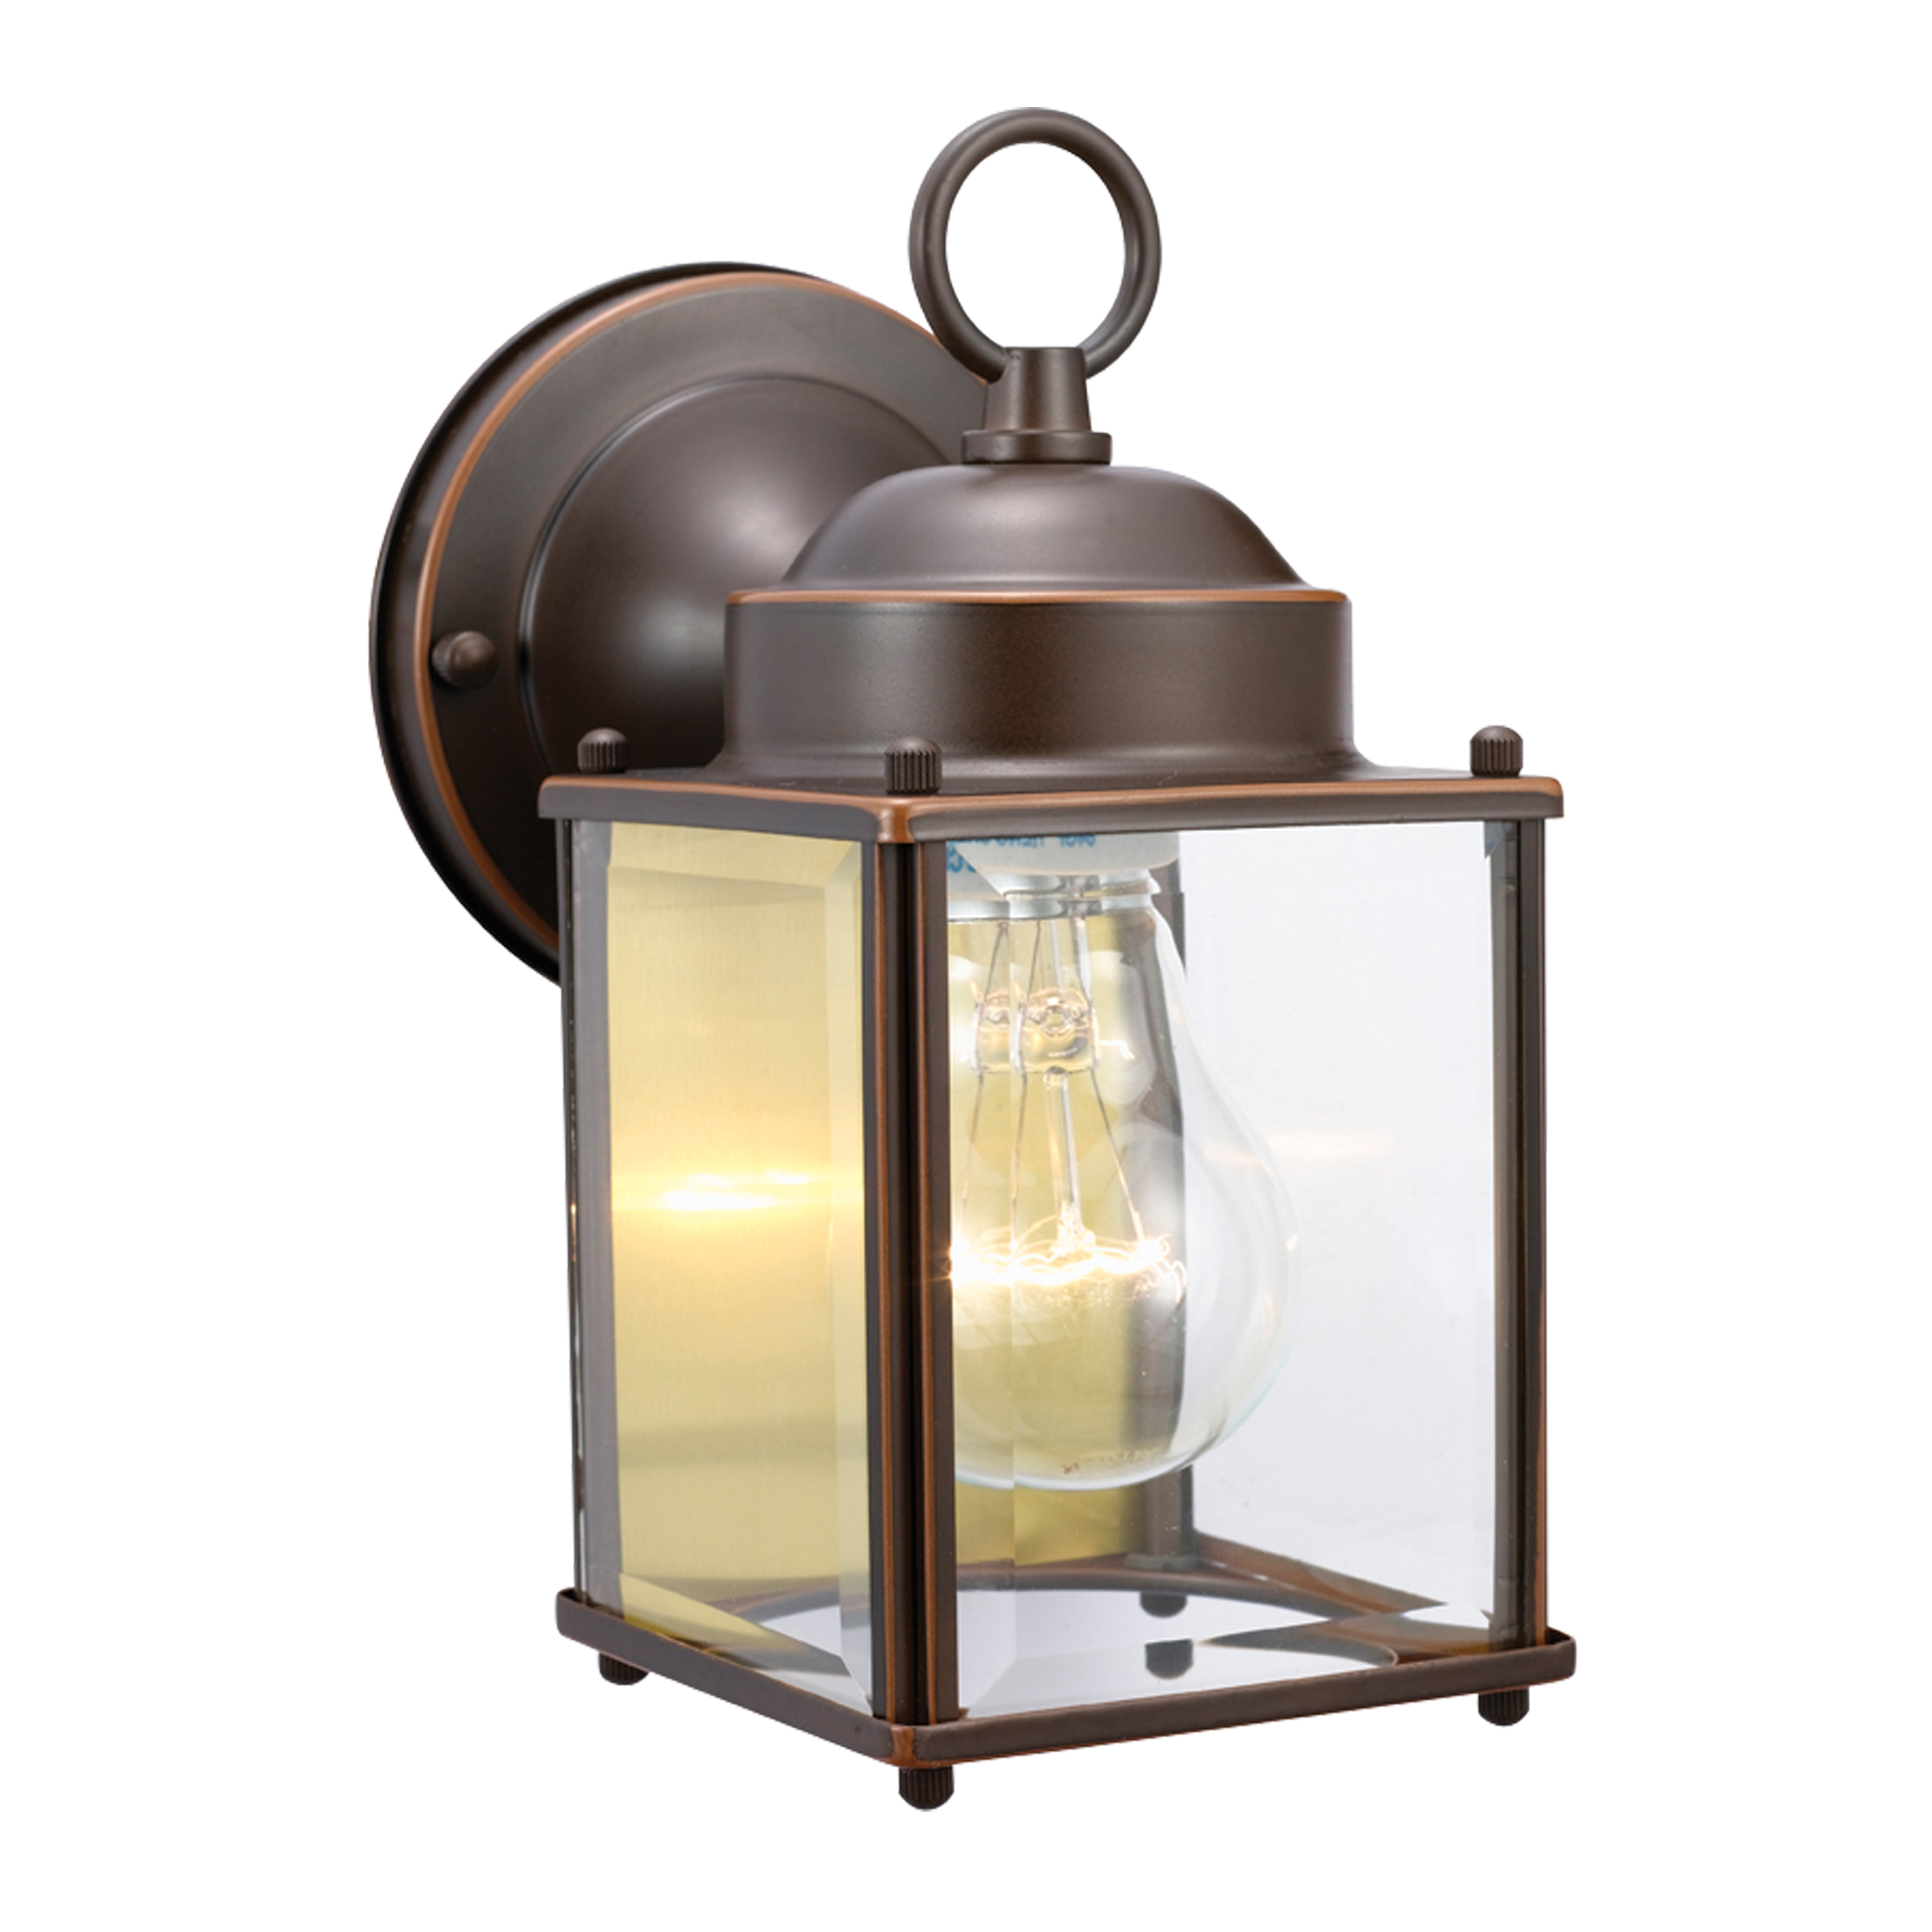 lights houses led lighting mount sconce garage outdoor outside fixtures mounted sconces light inspirational q exterior wall lamp lowes with coach candle for your solar